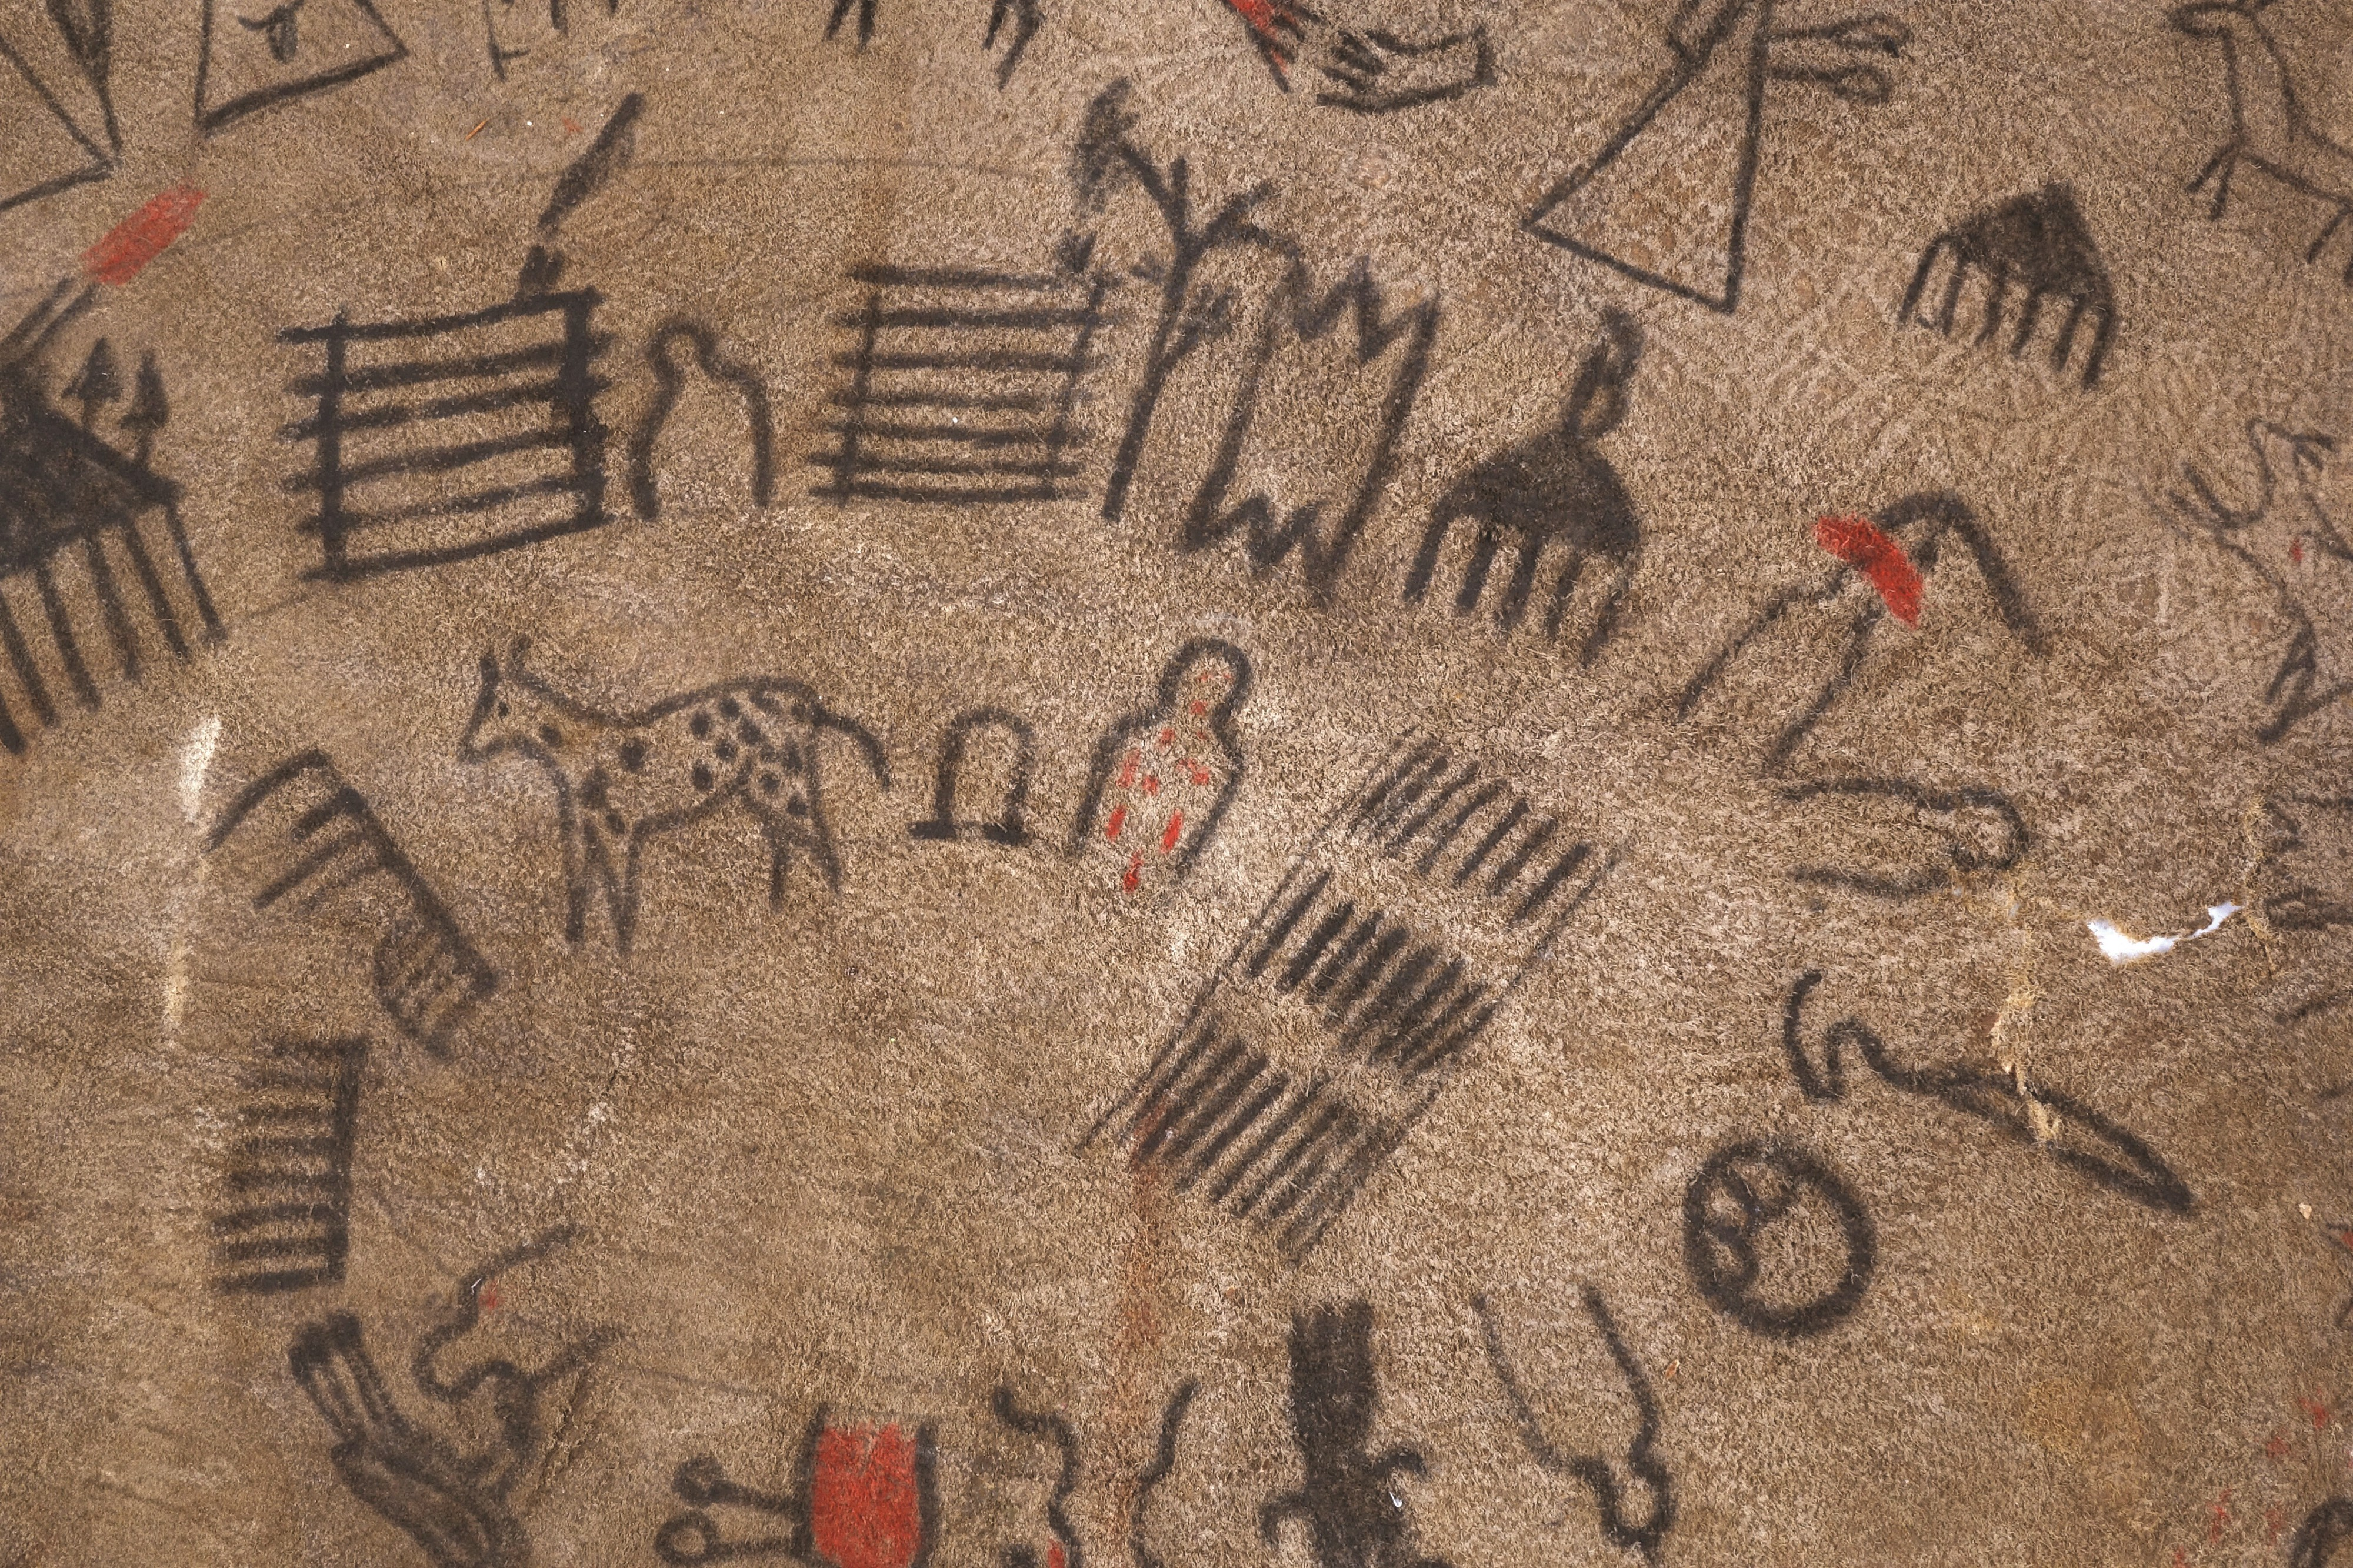 Detail of Lakota Winter Count, a pictorial calendar, including image of person with red dots representing smallpox epidemic